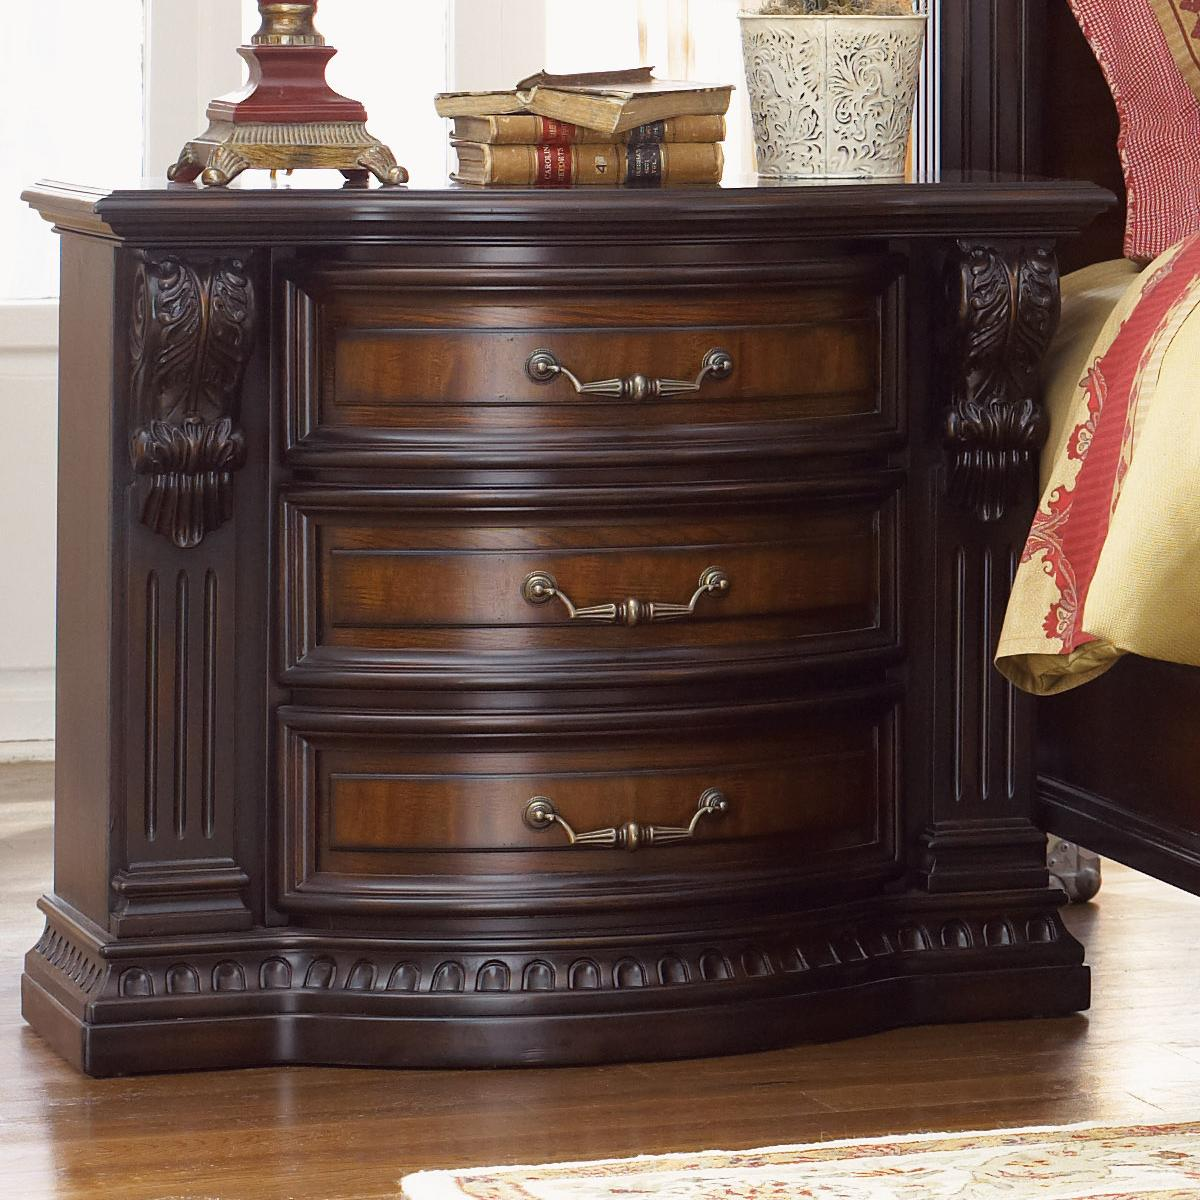 Fairmont Designs Grand Estates Night Stand W Acanthus Leaf Detailing Royal Furniture Night